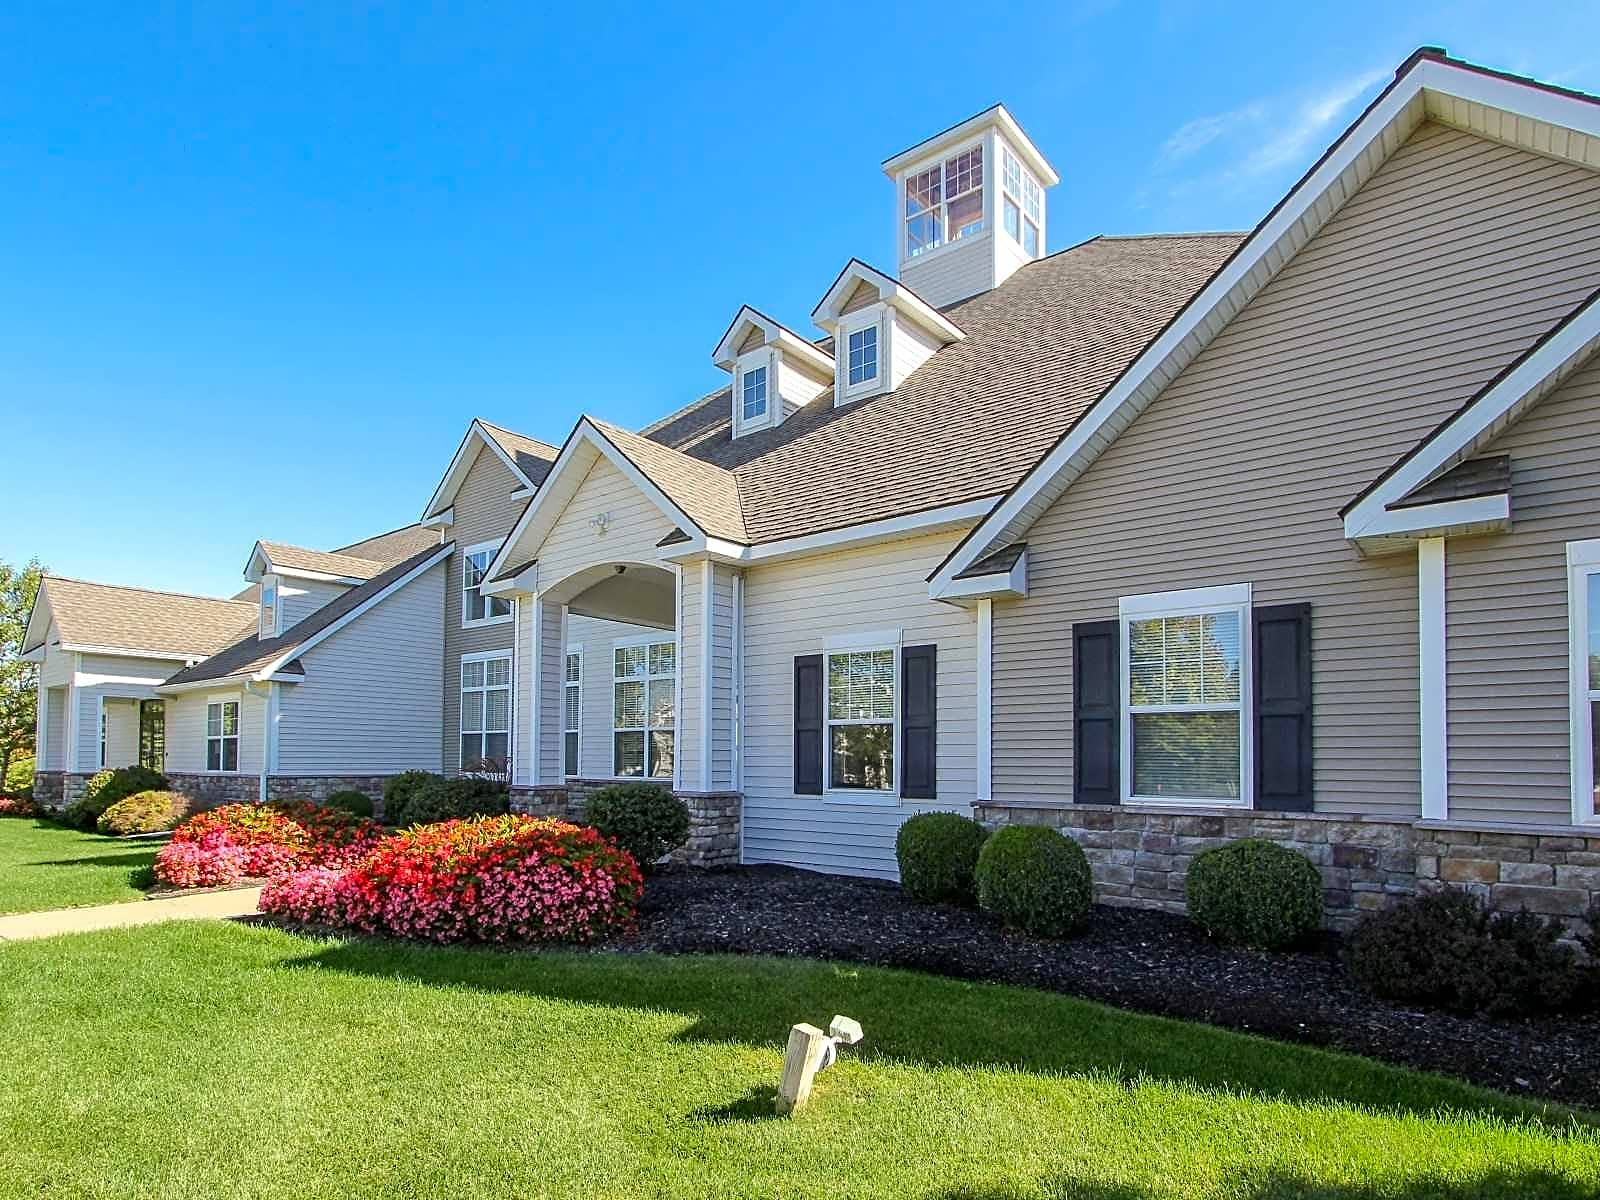 Apartments Near Skidmore Steeplechase at Malta for Skidmore College Students in Saratoga Springs, NY